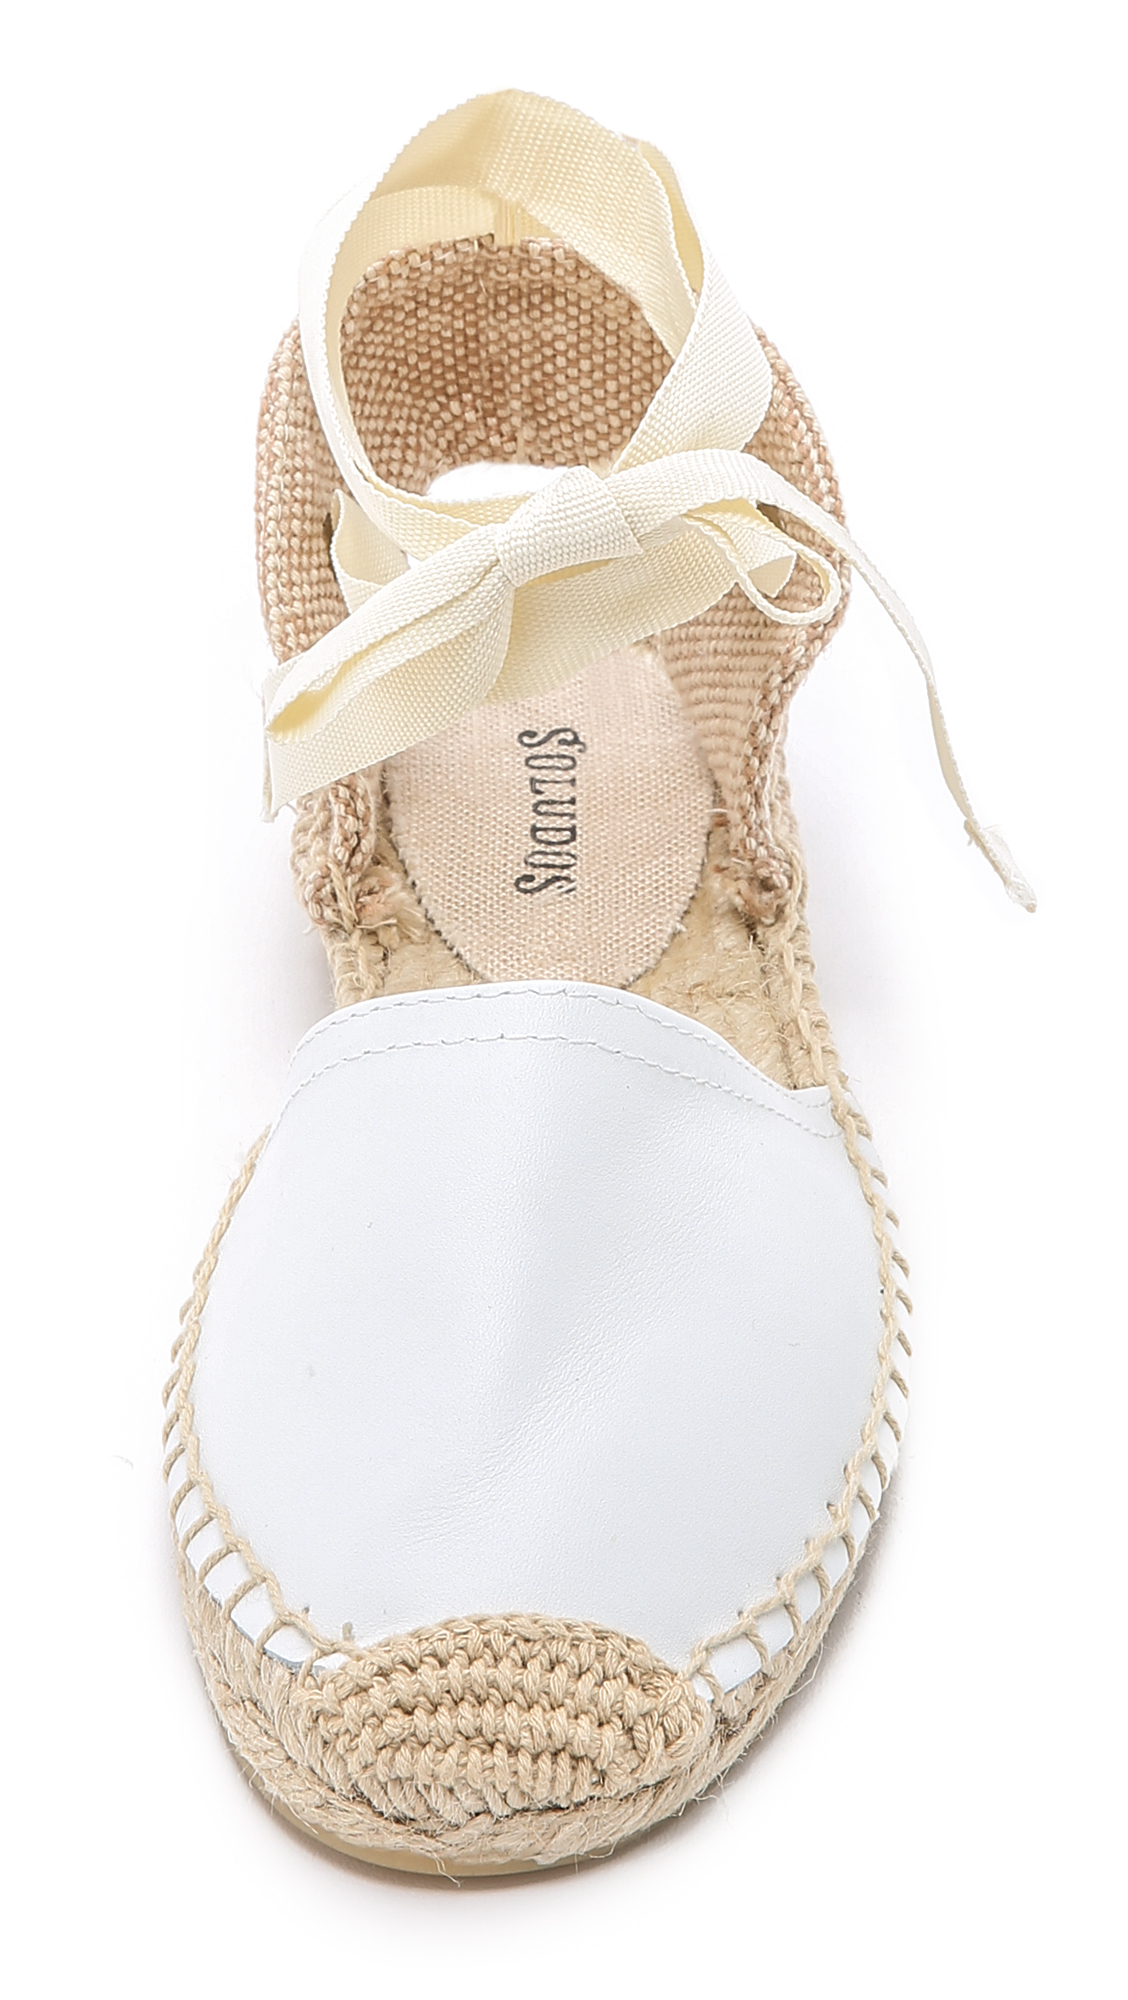 17271fc7660b Lyst - Soludos Leather Espadrille Sandals in White